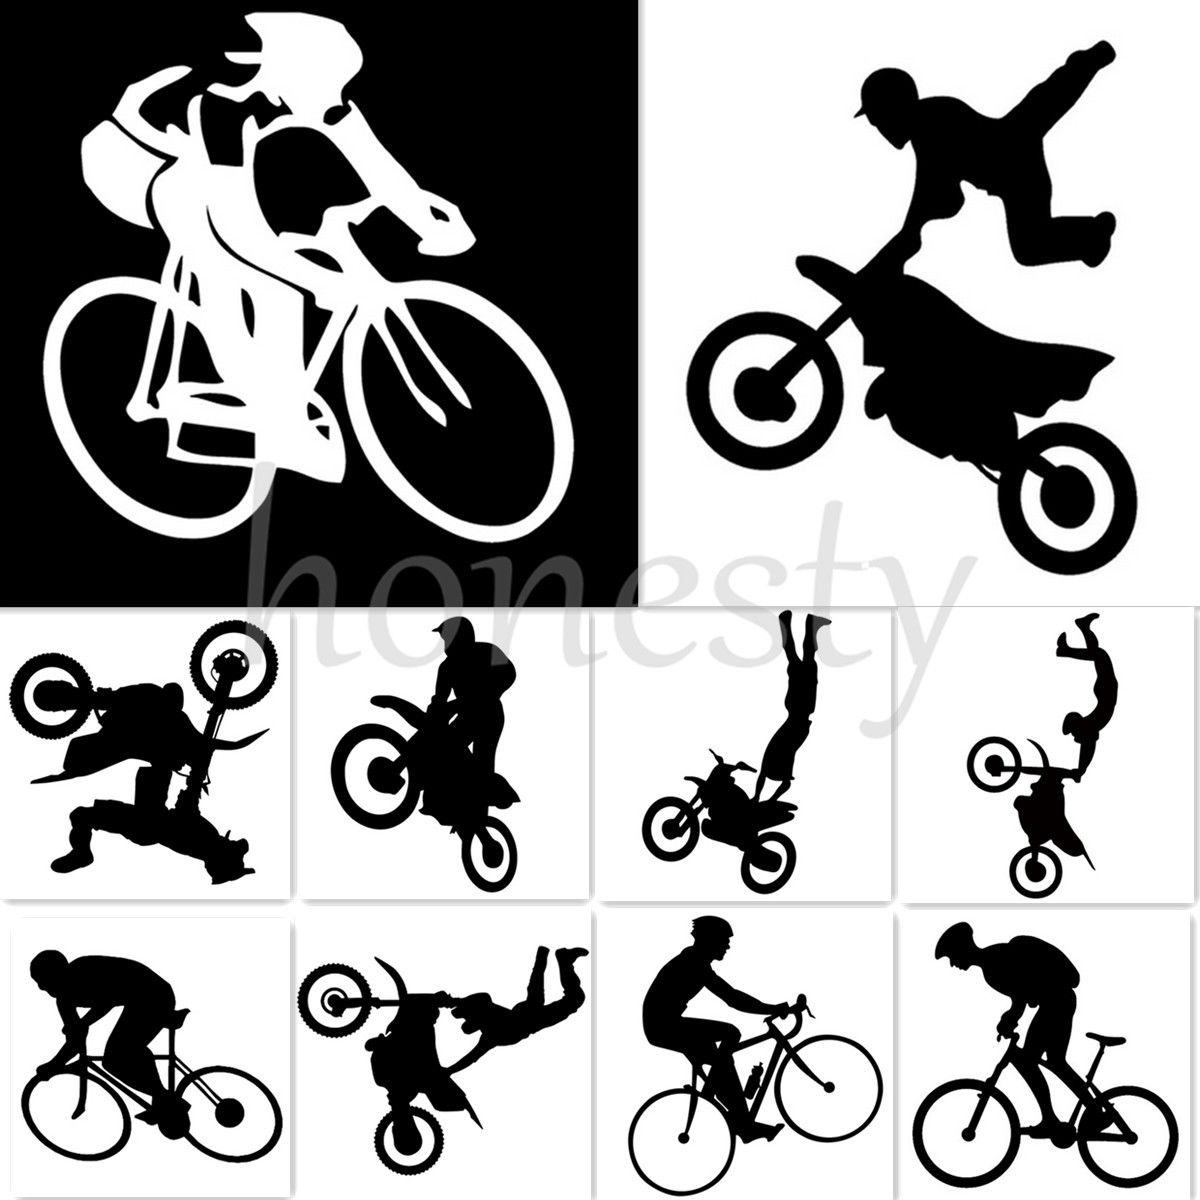 Bike stickers design online - Freestyle Motocross Cycling Bike Sports Car Window Bumper Laptop Wall Sticker China Mainland